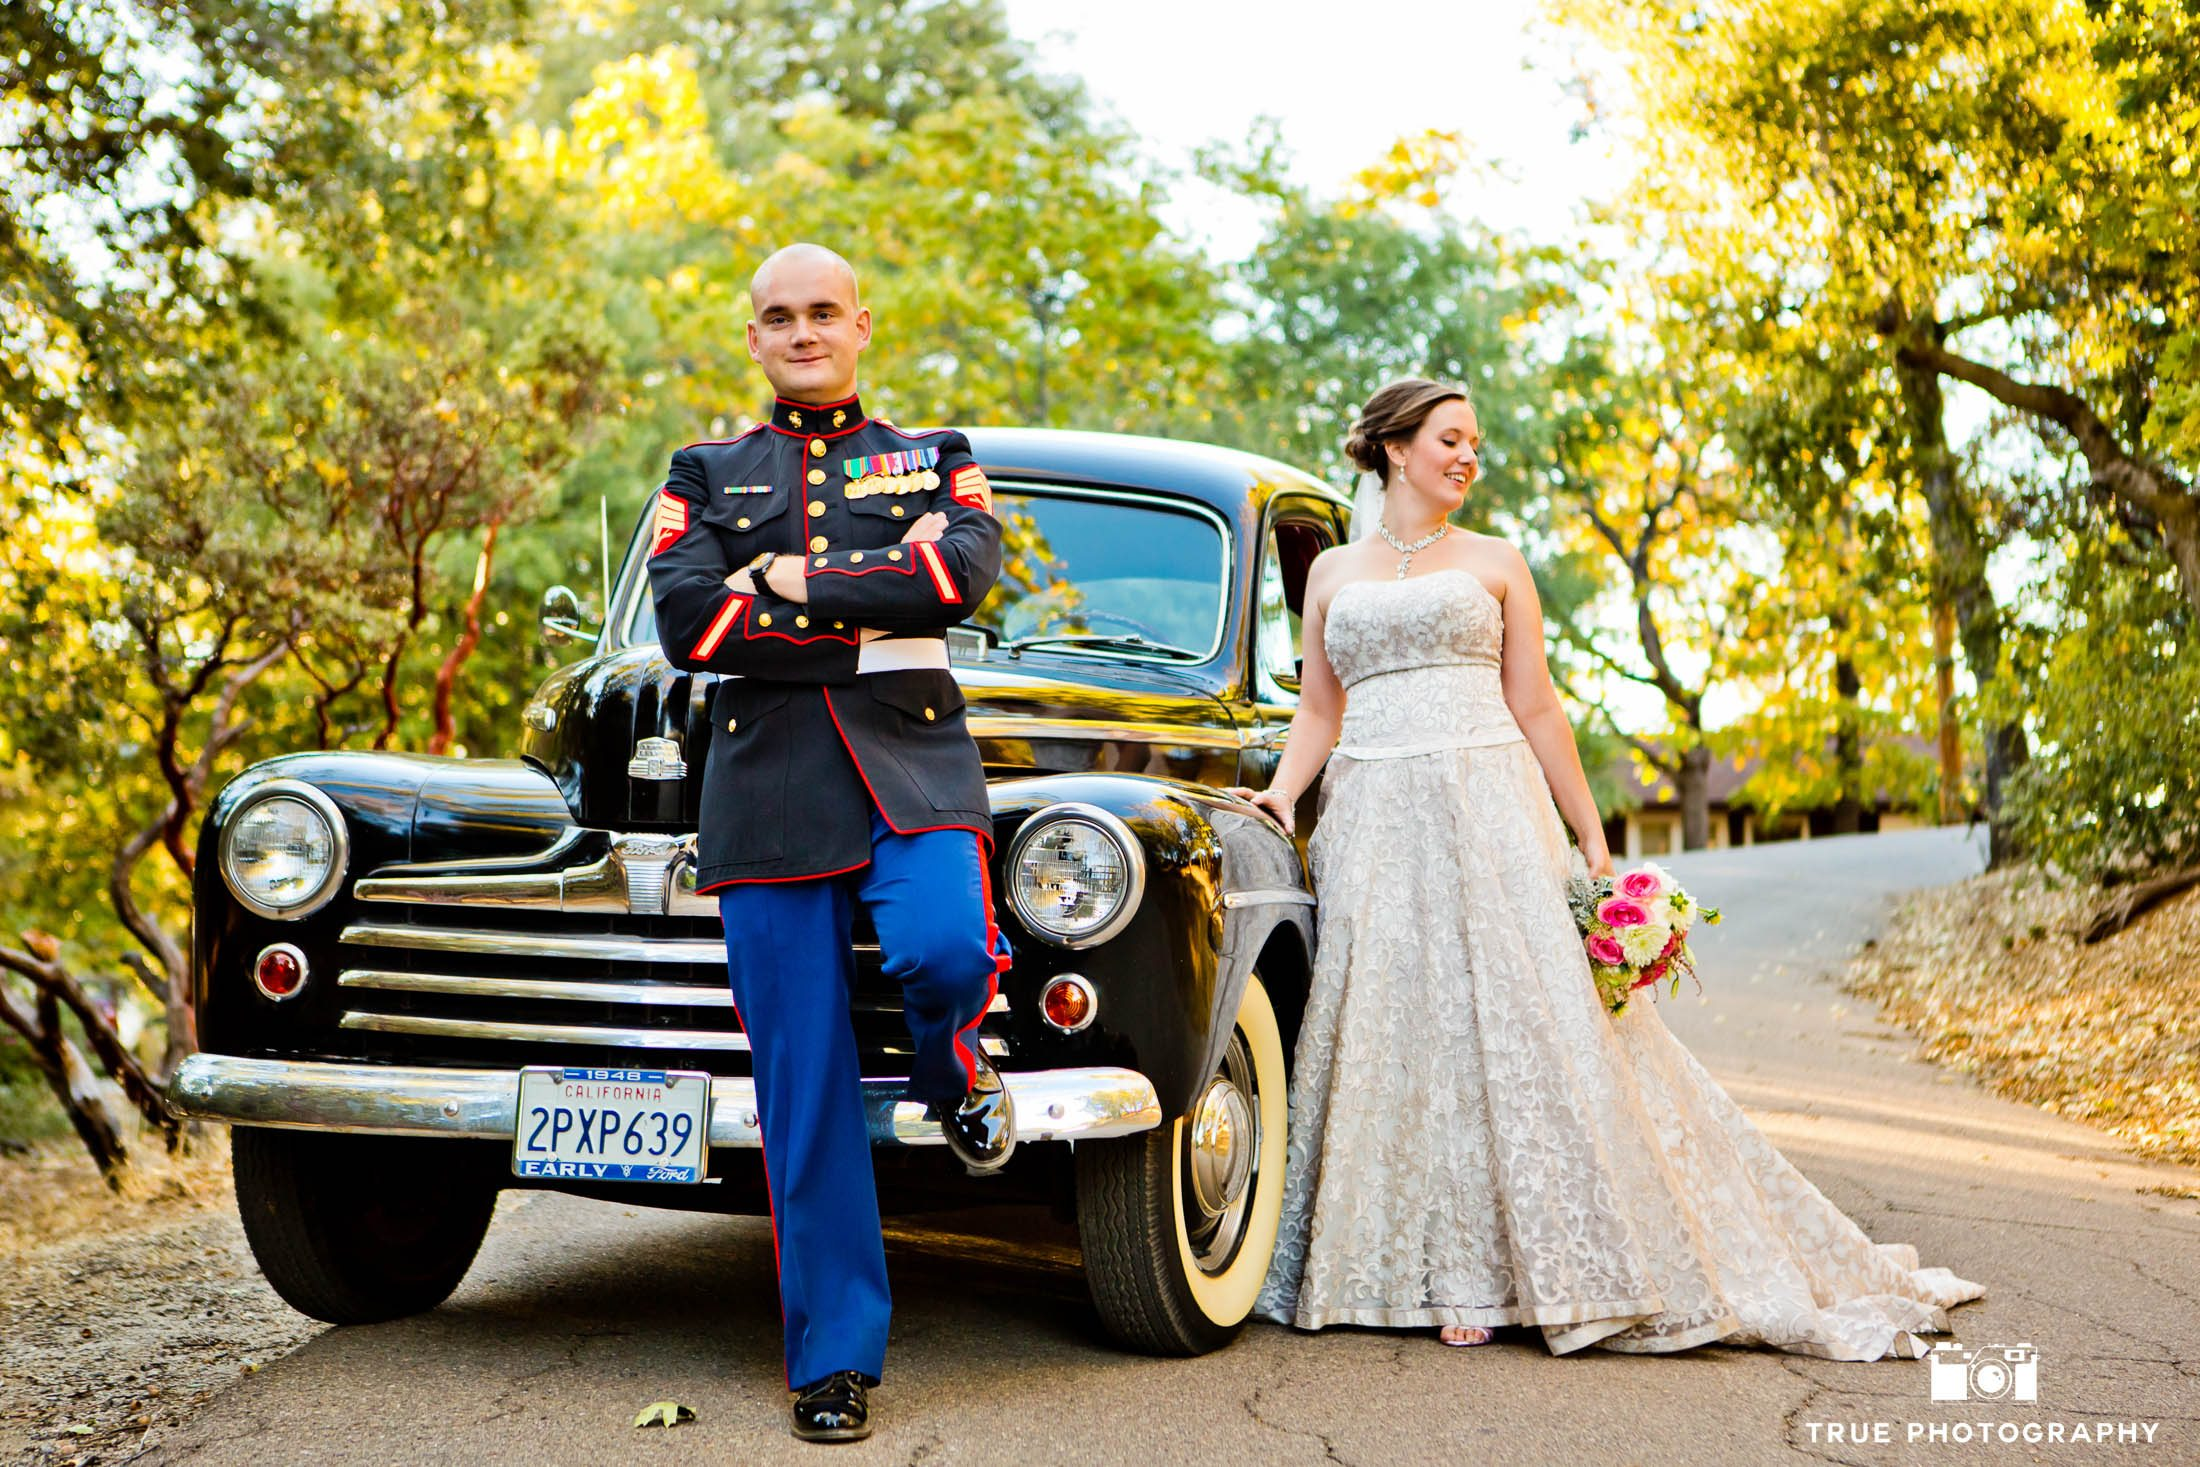 Military Groom and Bride pose with classic Ford car after wedding in Julian, California